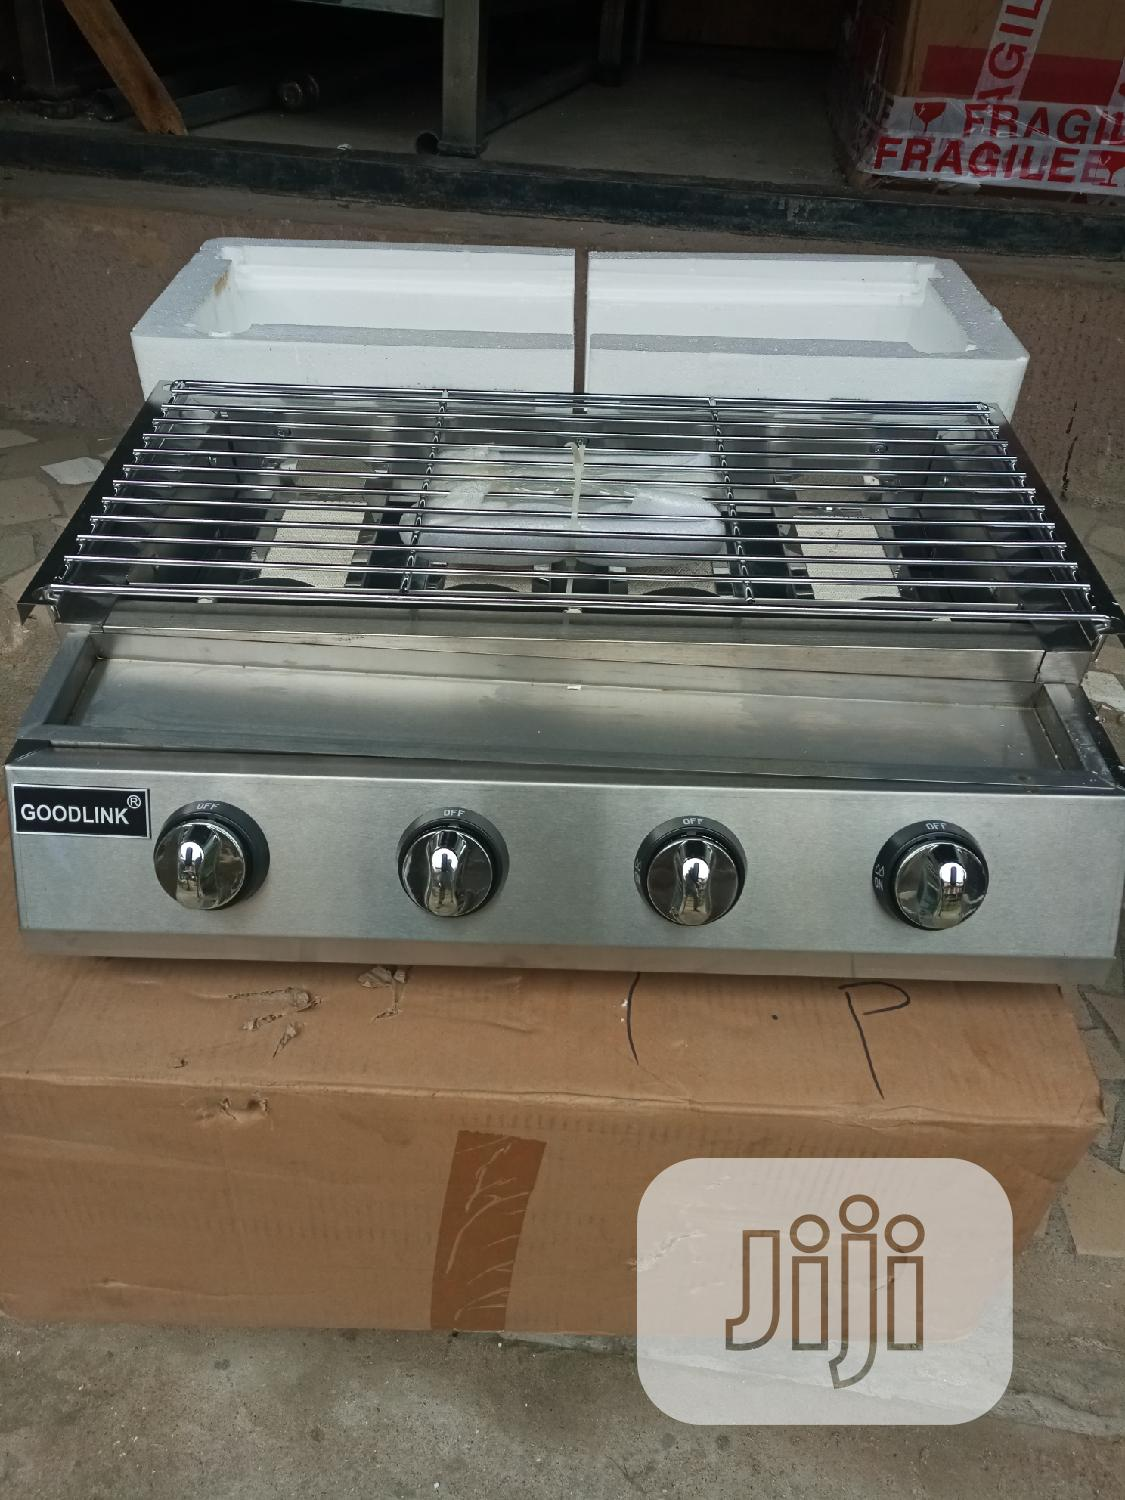 Gas Grill Machine | Restaurant & Catering Equipment for sale in Apo District, Abuja (FCT) State, Nigeria